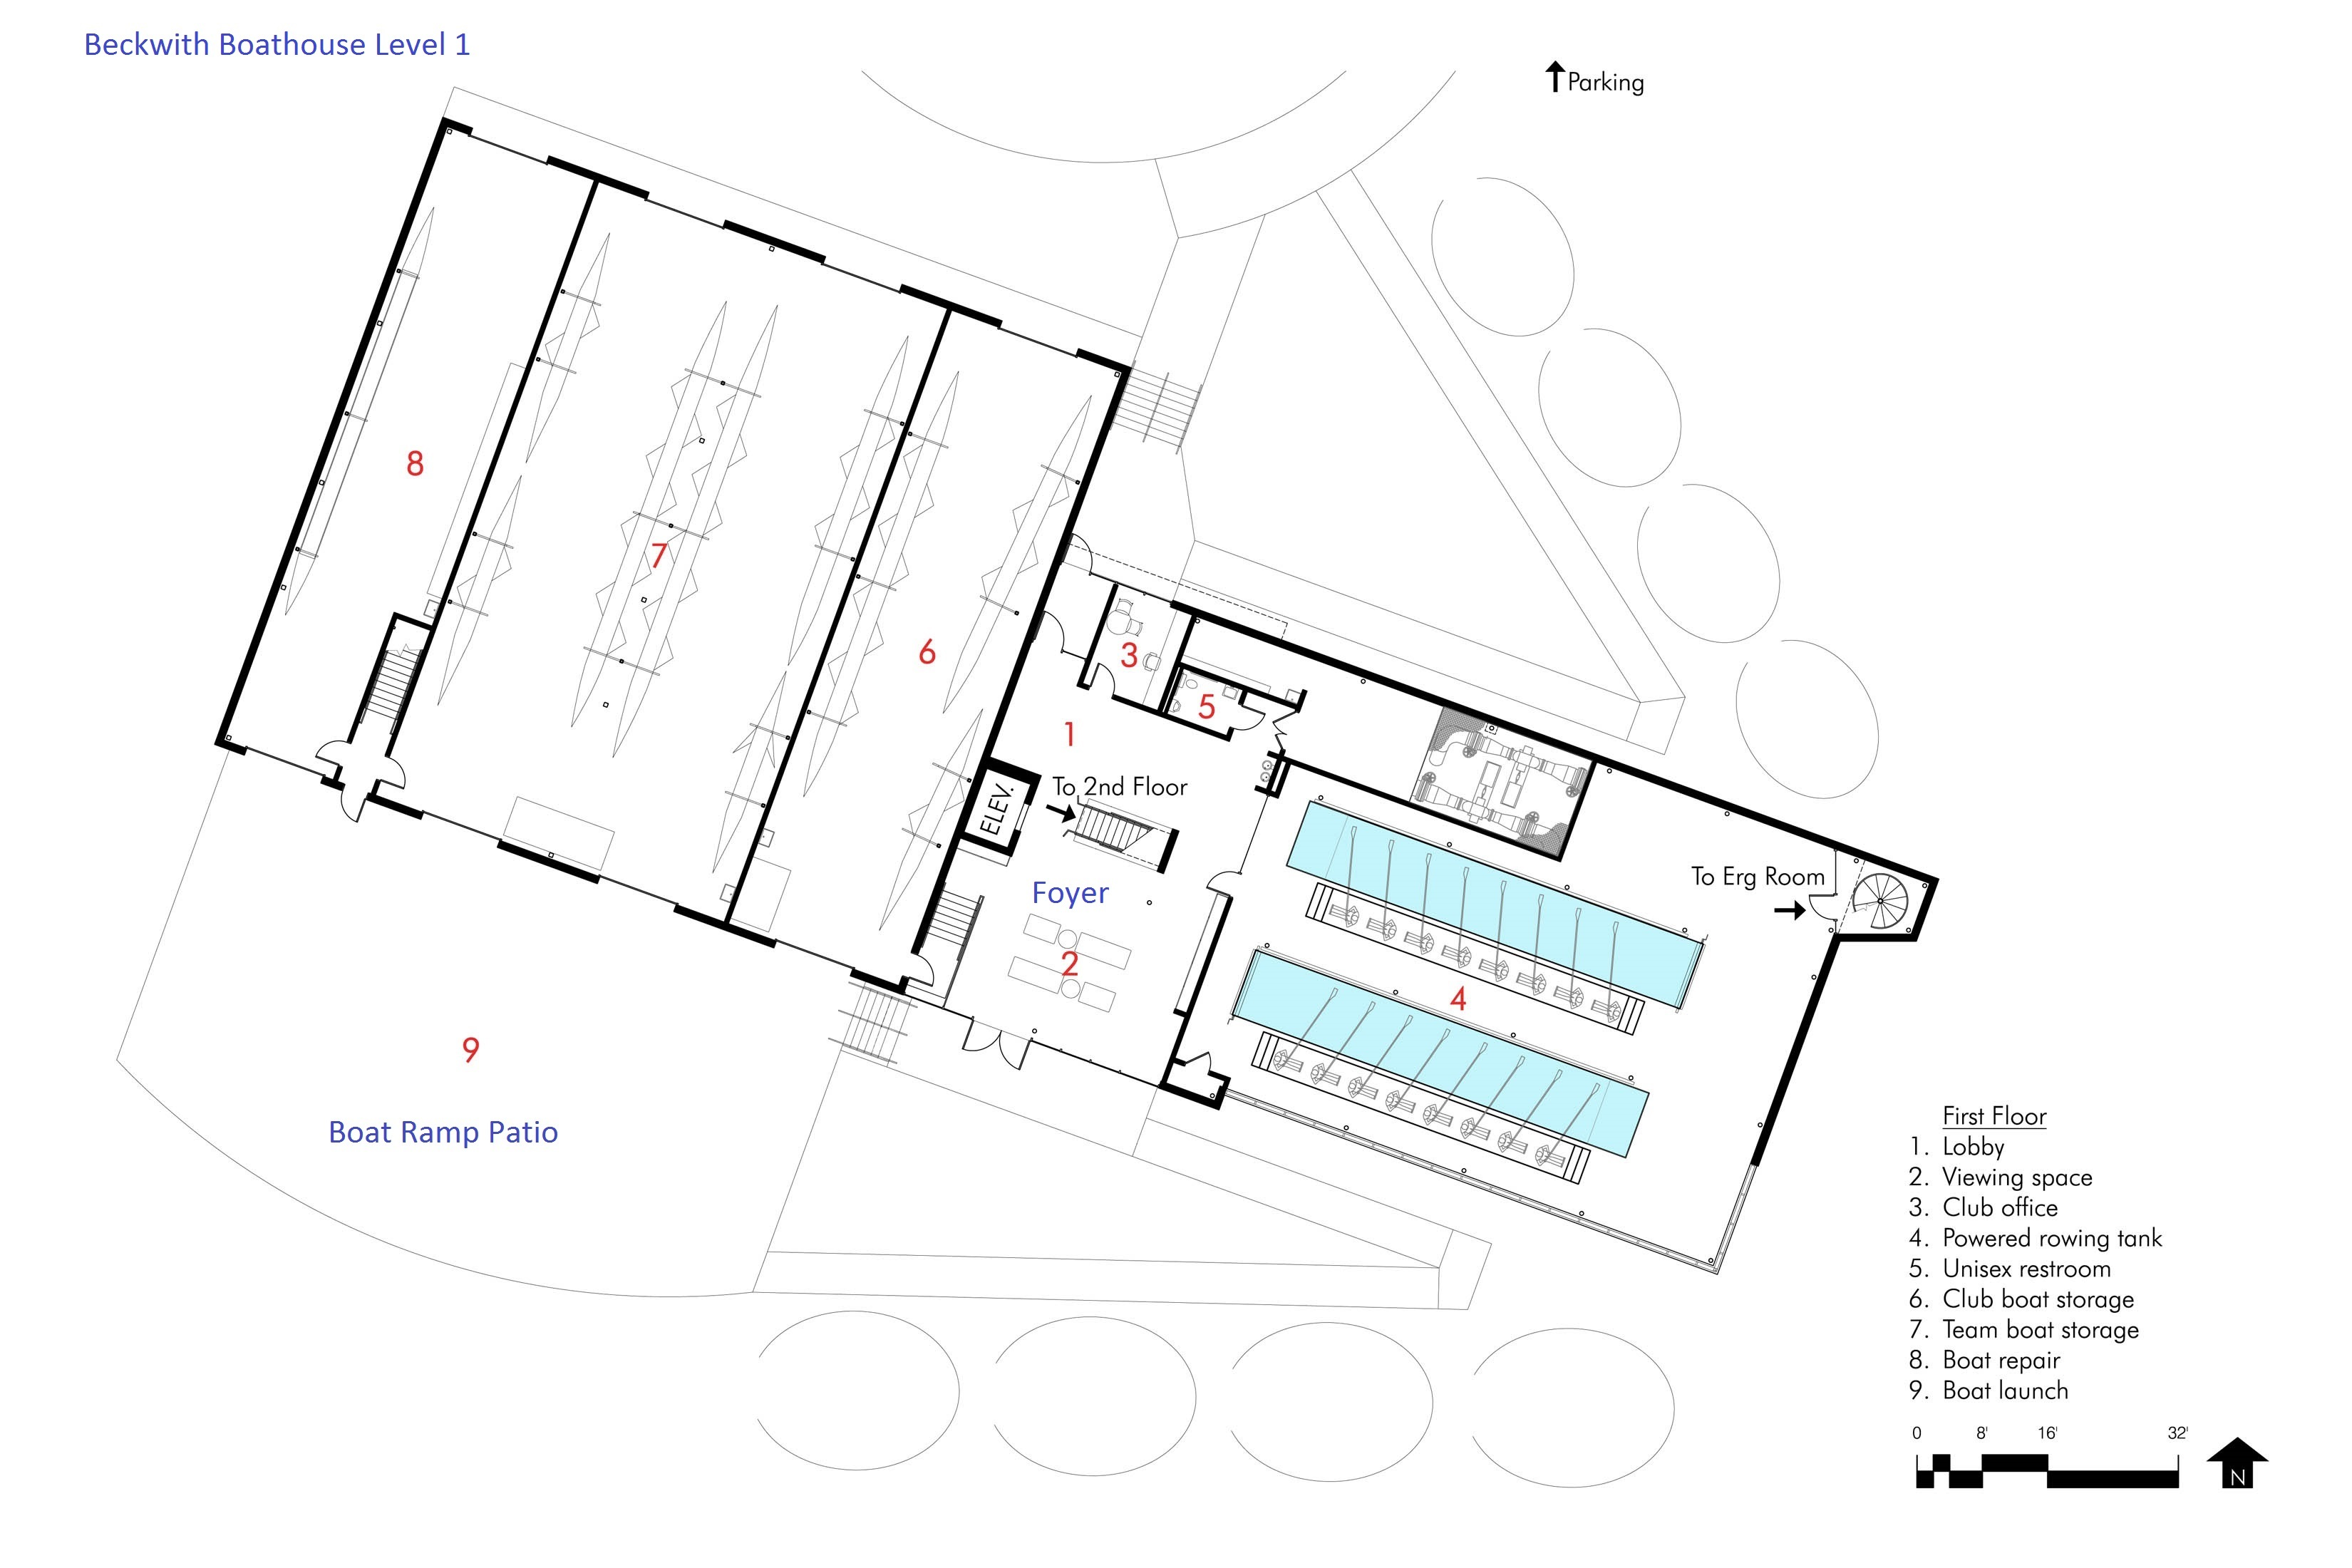 Beckwith Floor Plan (Level 1)